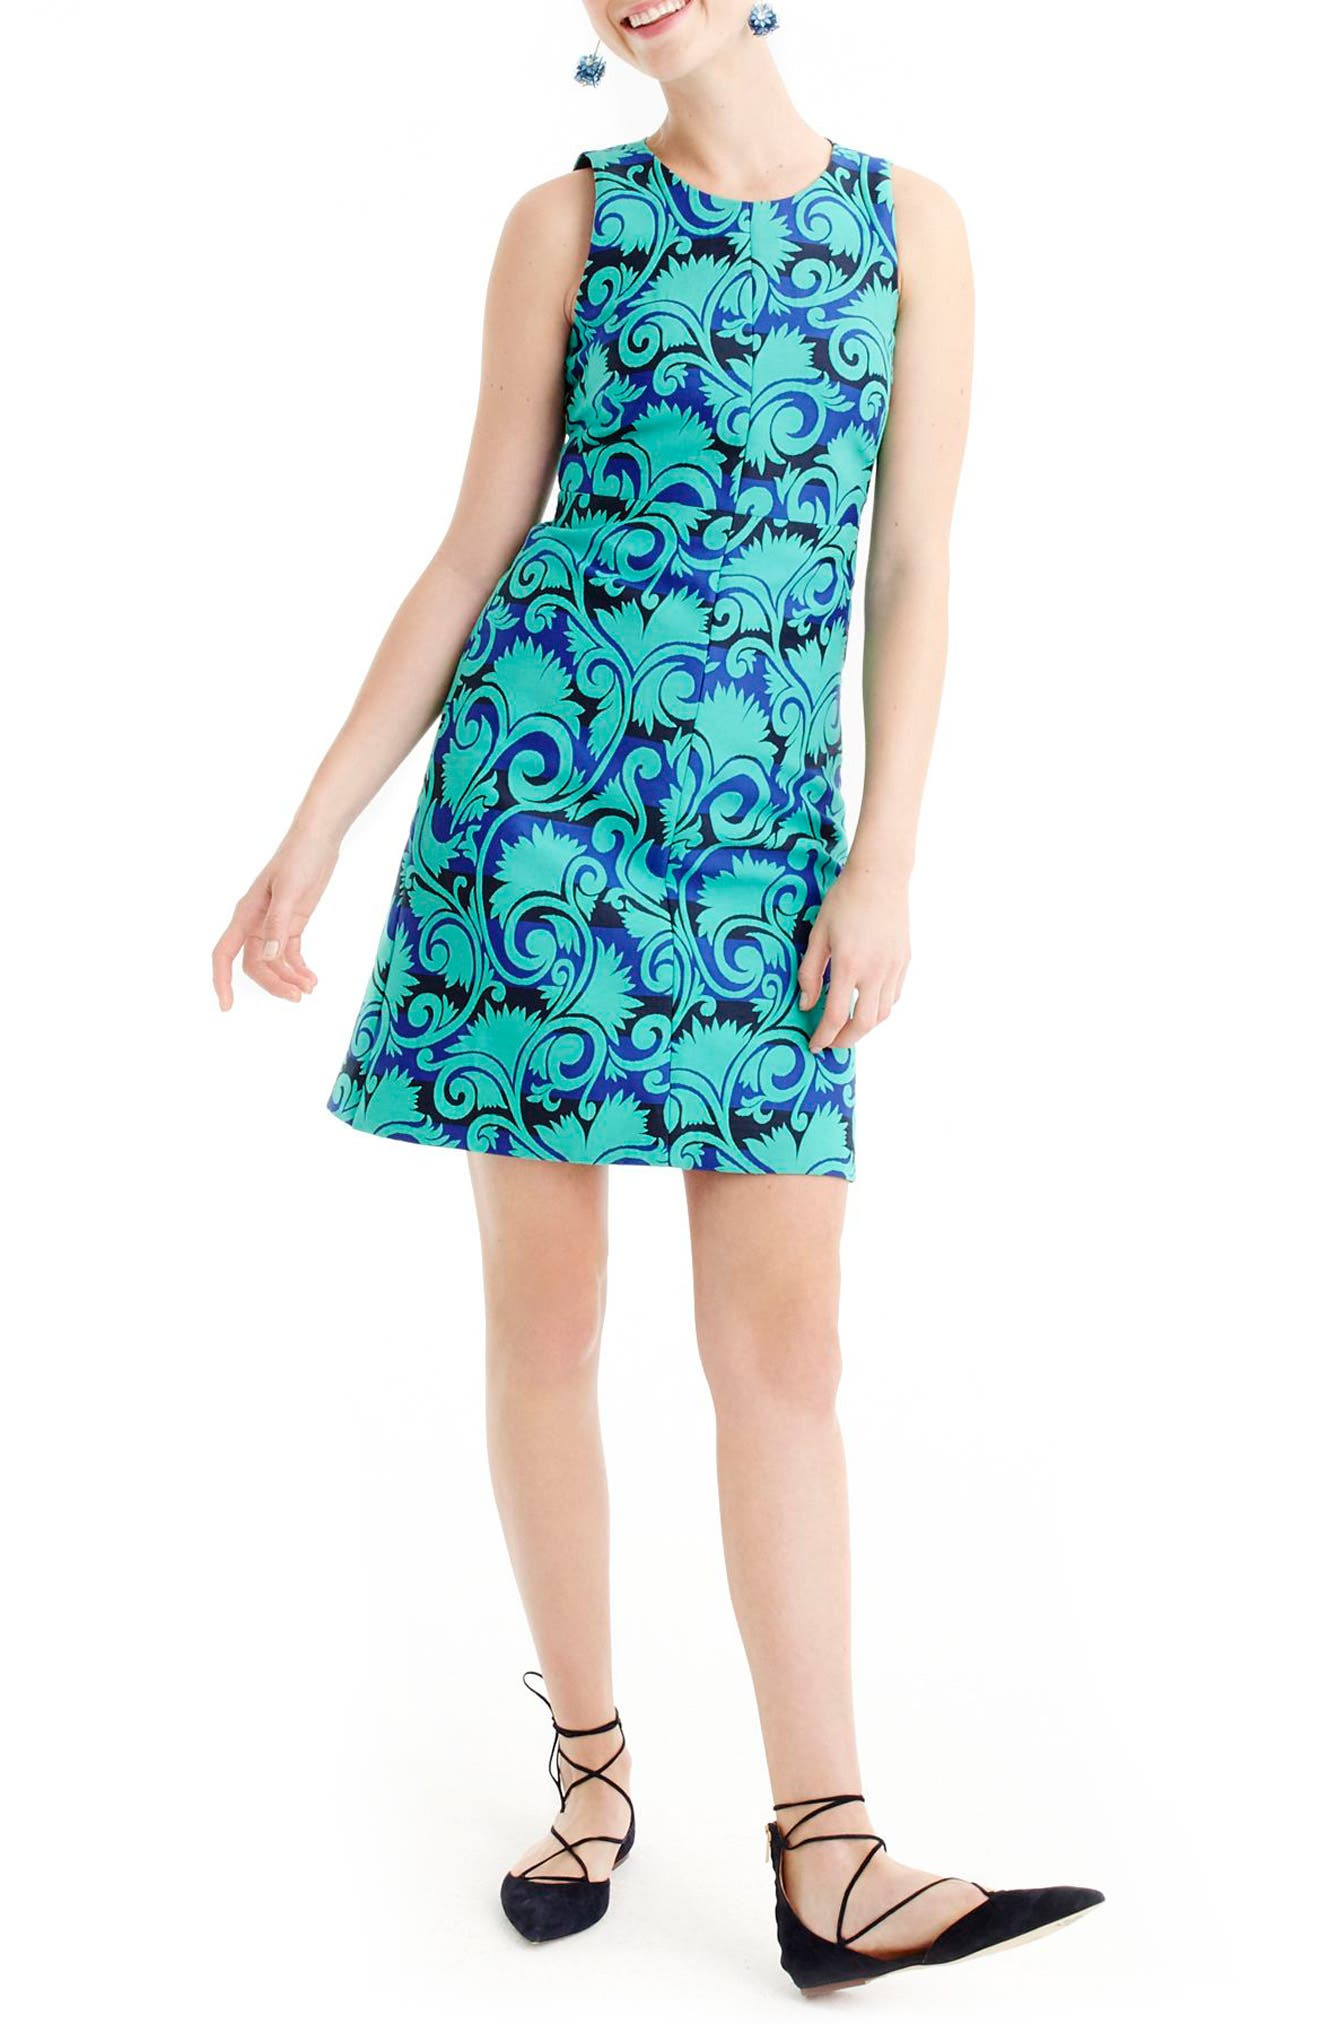 Alternate Image 1 Selected - J.Crew Vineyard Jacquard A-Line Dress (Regular & Petite)